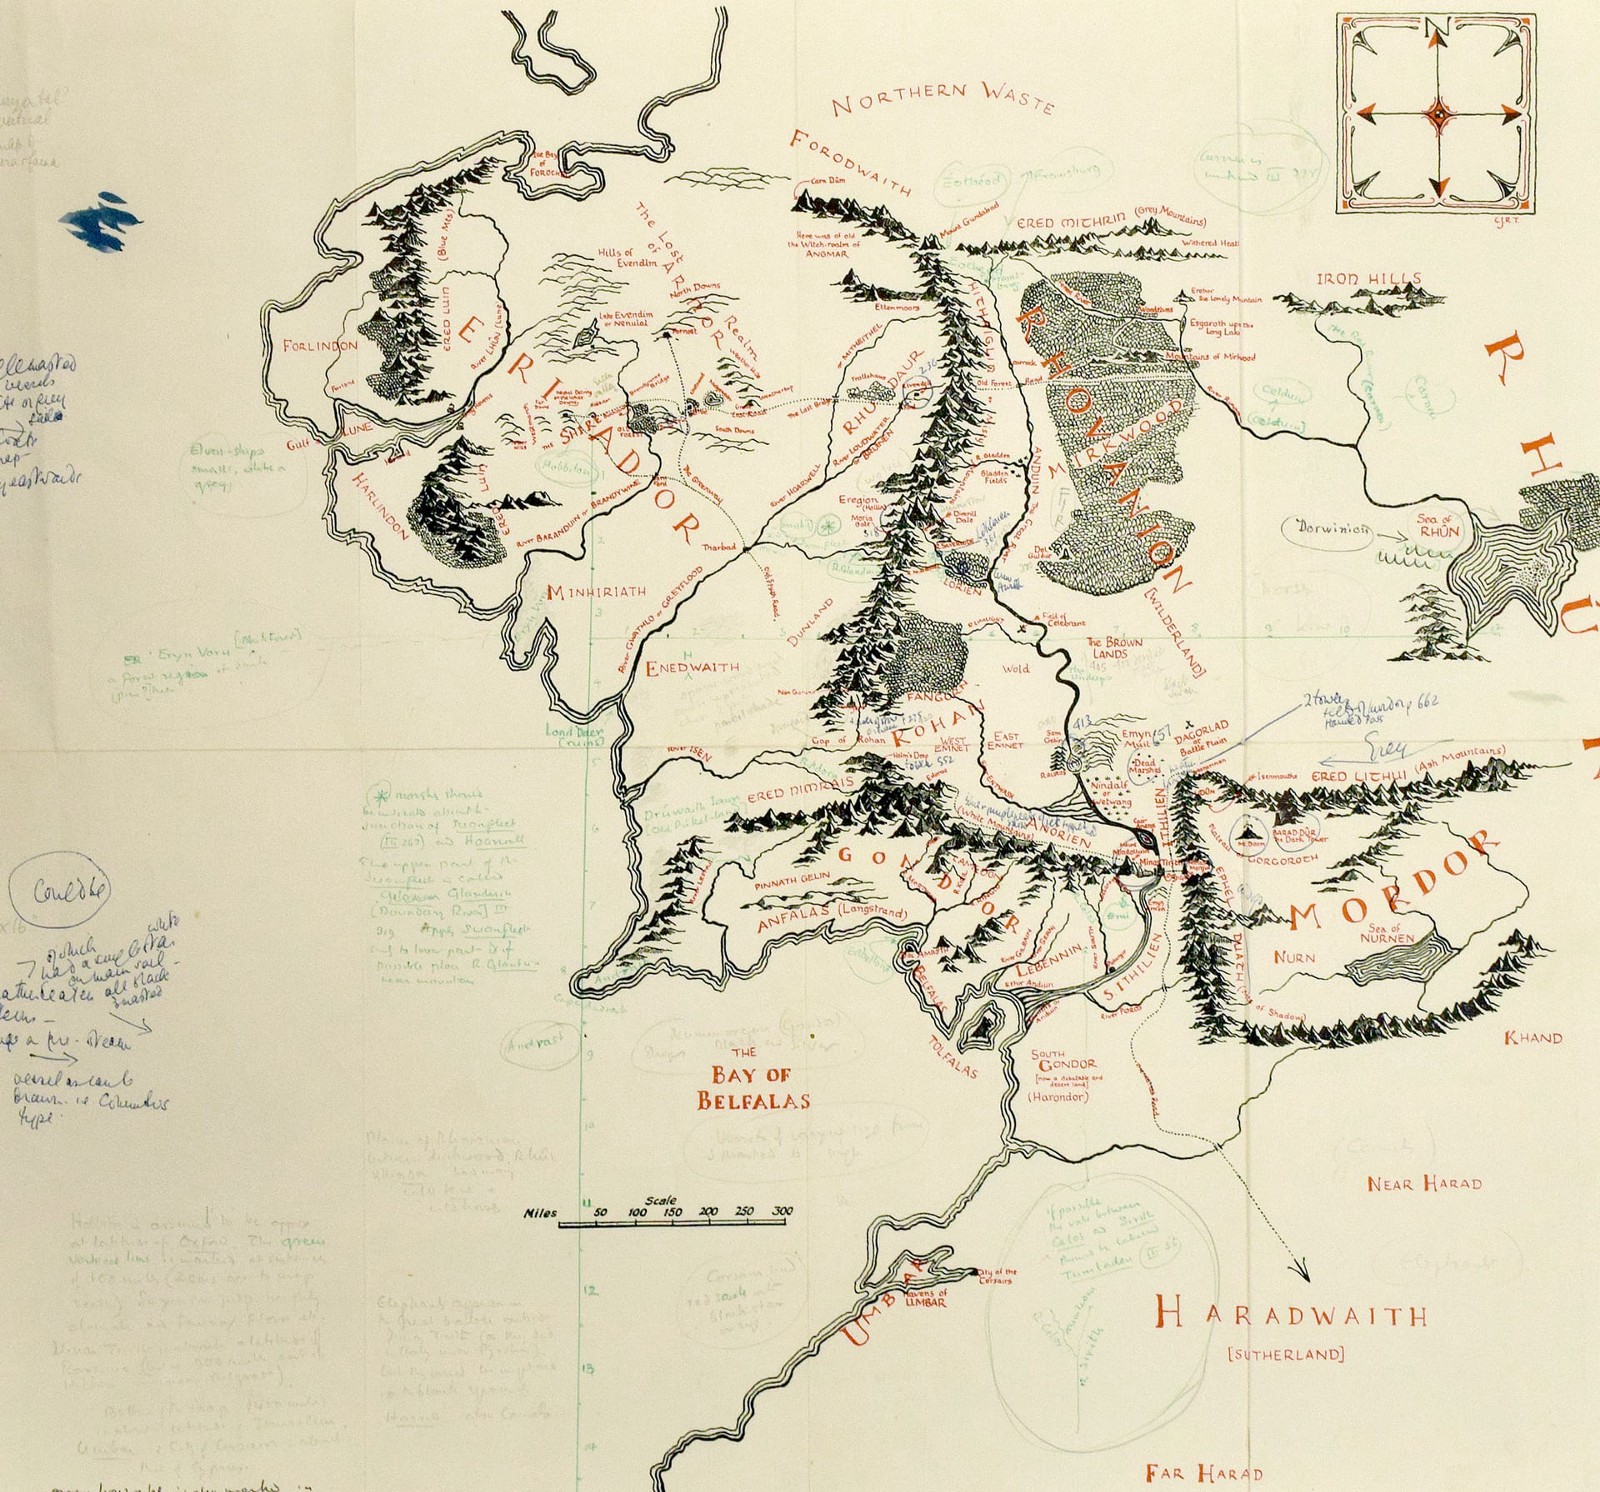 Making a map of scotland lord of the rings style callum ogden annotated map of middle earth by jrr tolkien publicscrutiny Images